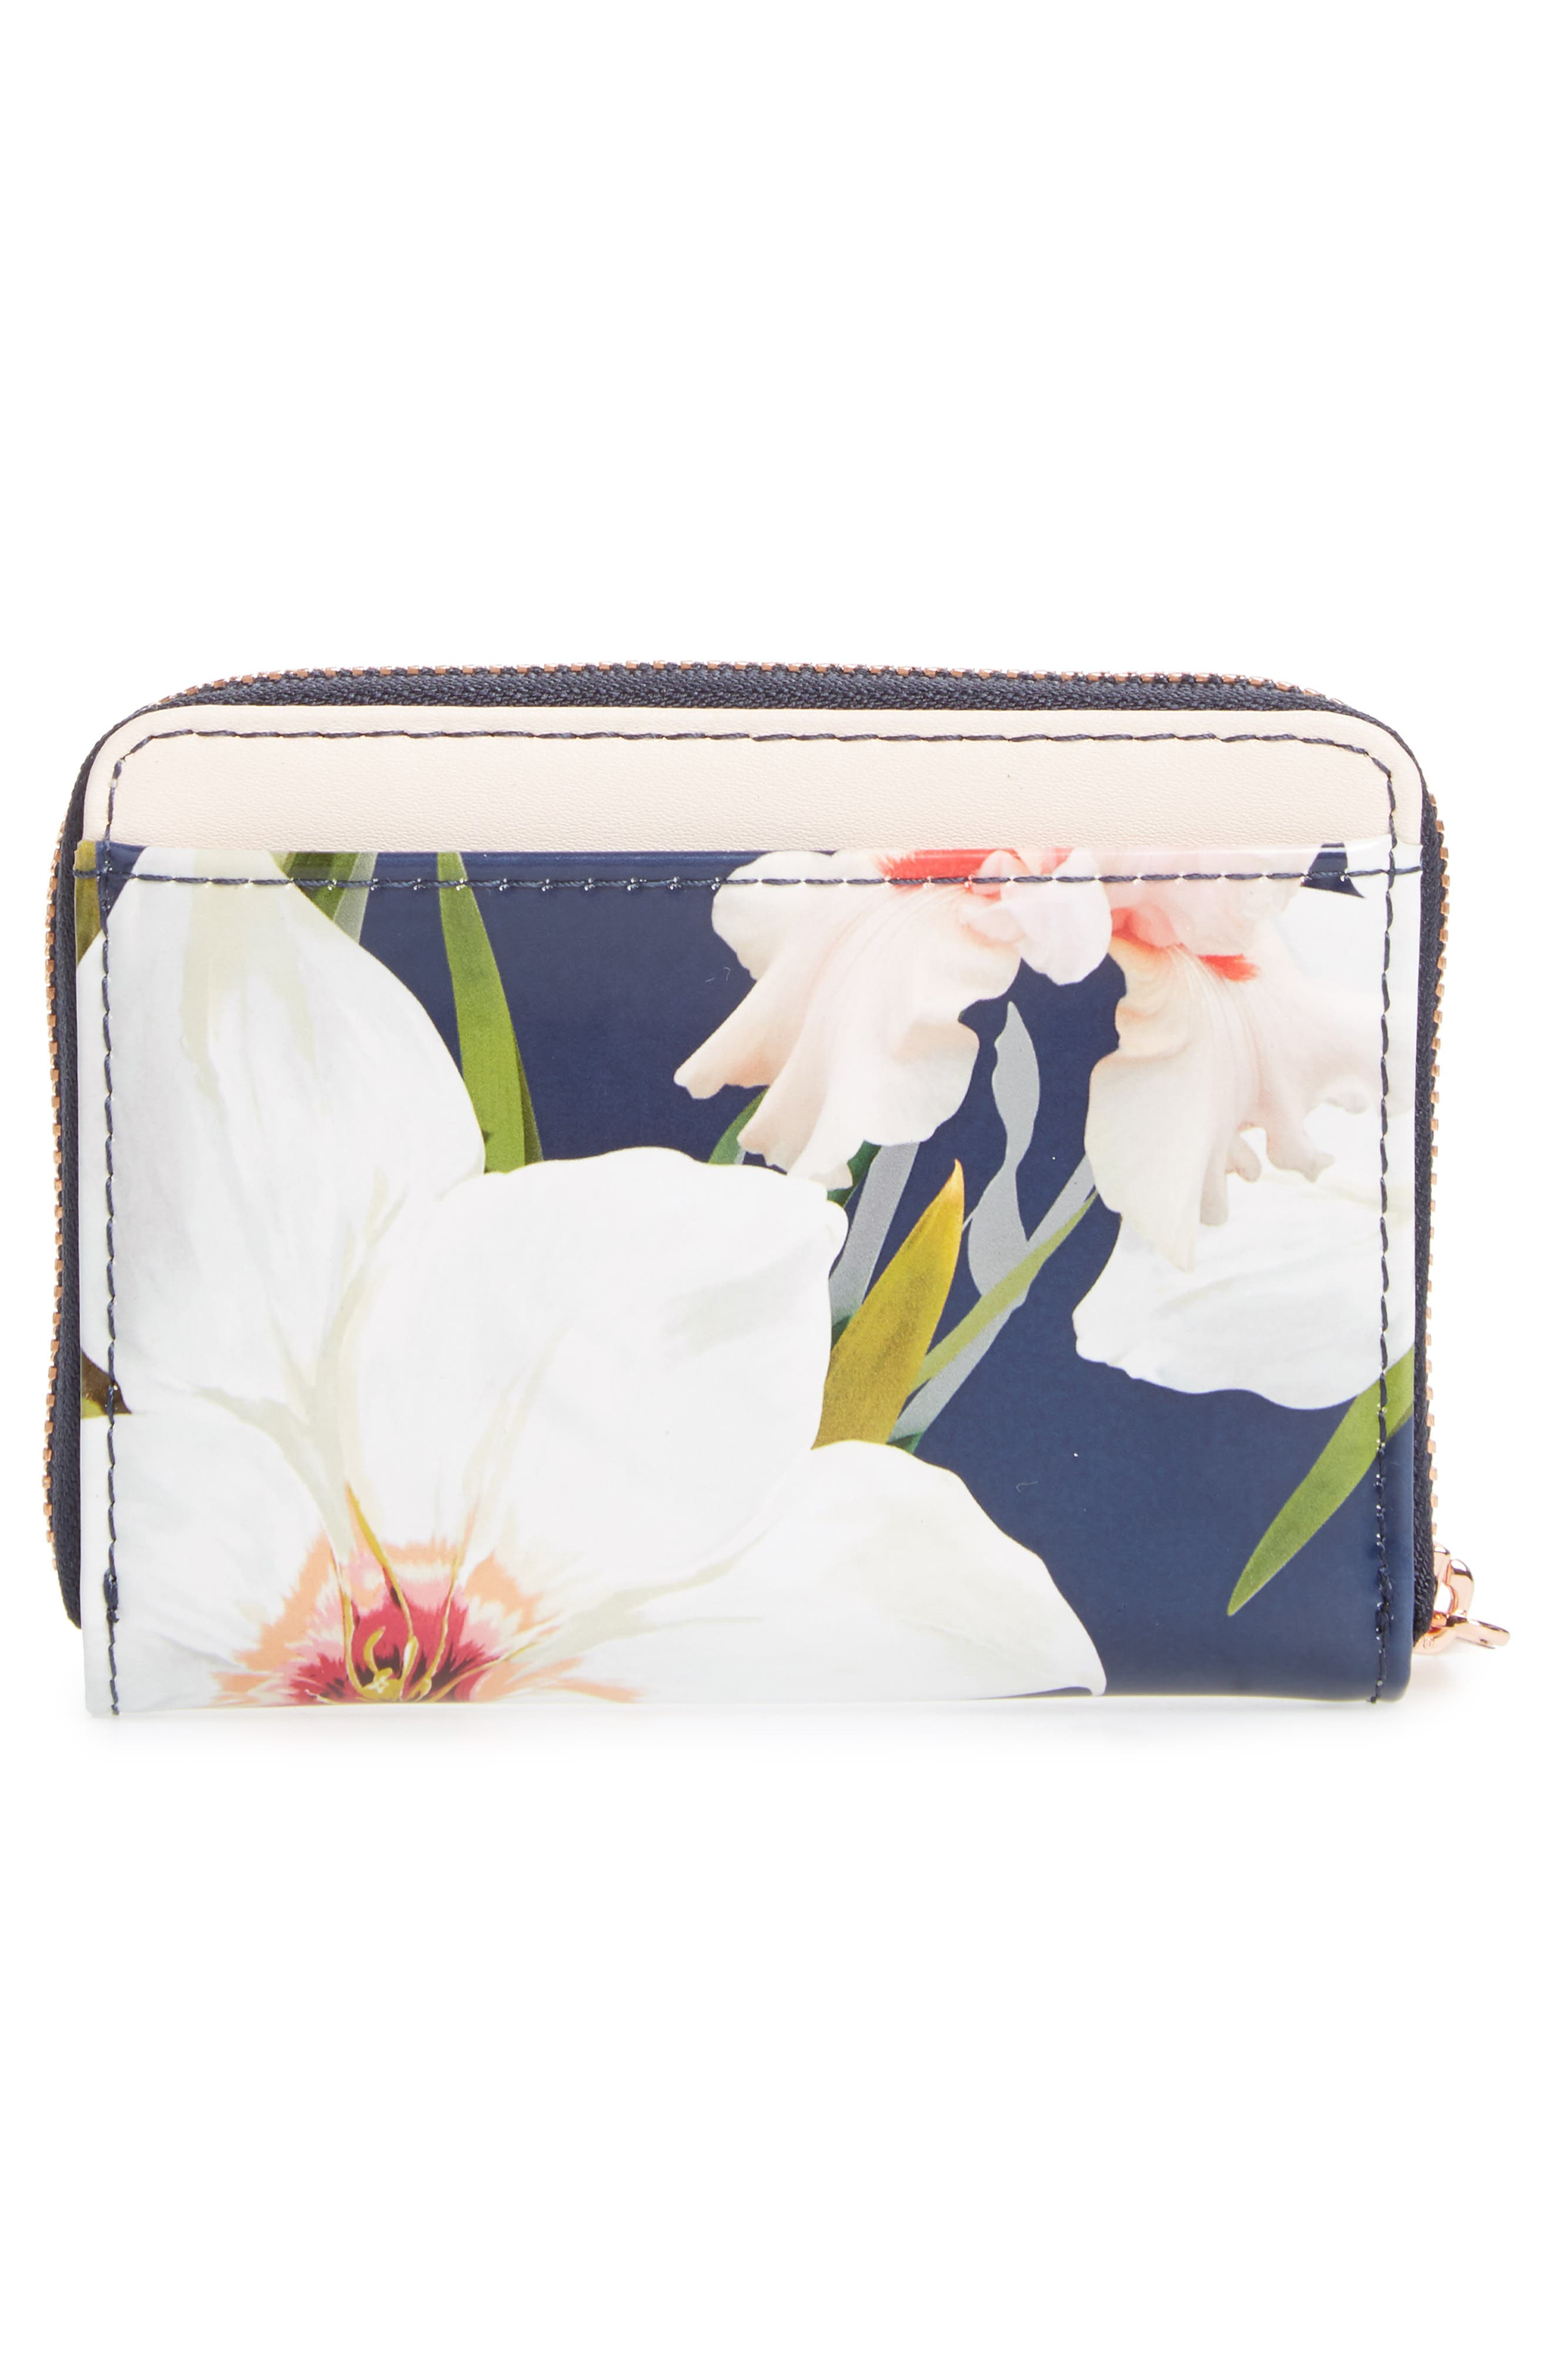 Vallie Chatsworth Bloom Leather Zip Coin Purse,                             Alternate thumbnail 8, color,